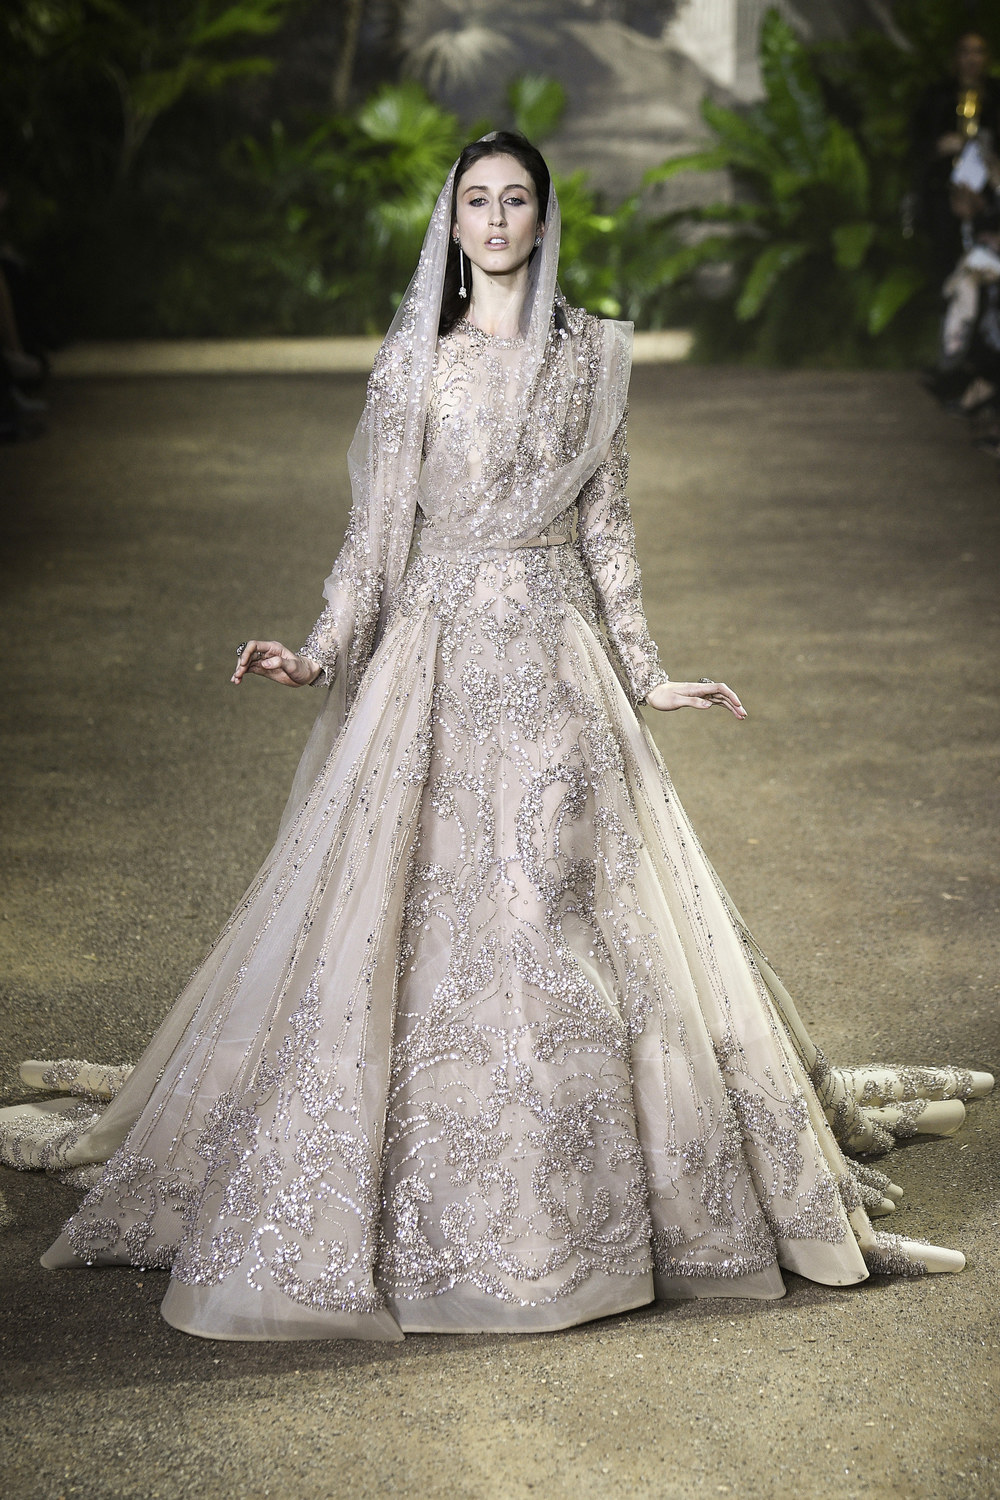 Elie saab debutes 300k wedding dress at paris fashion week arabia eliesaab2016spring junglespirit Choice Image